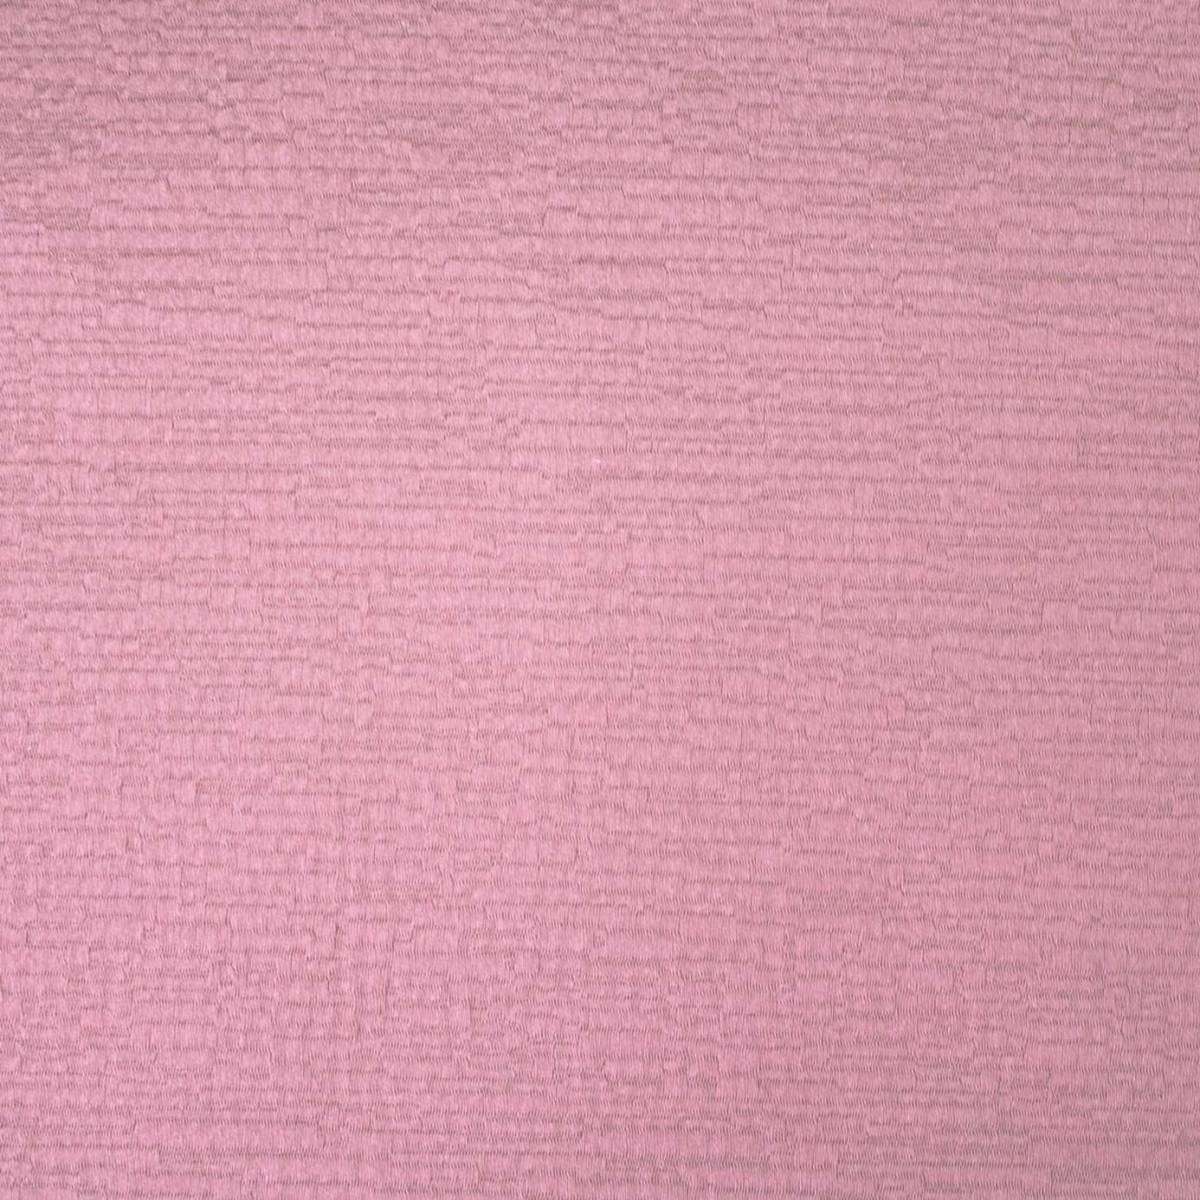 Glint Fabric Baby Pink Glintbabypink Ashley Wilde